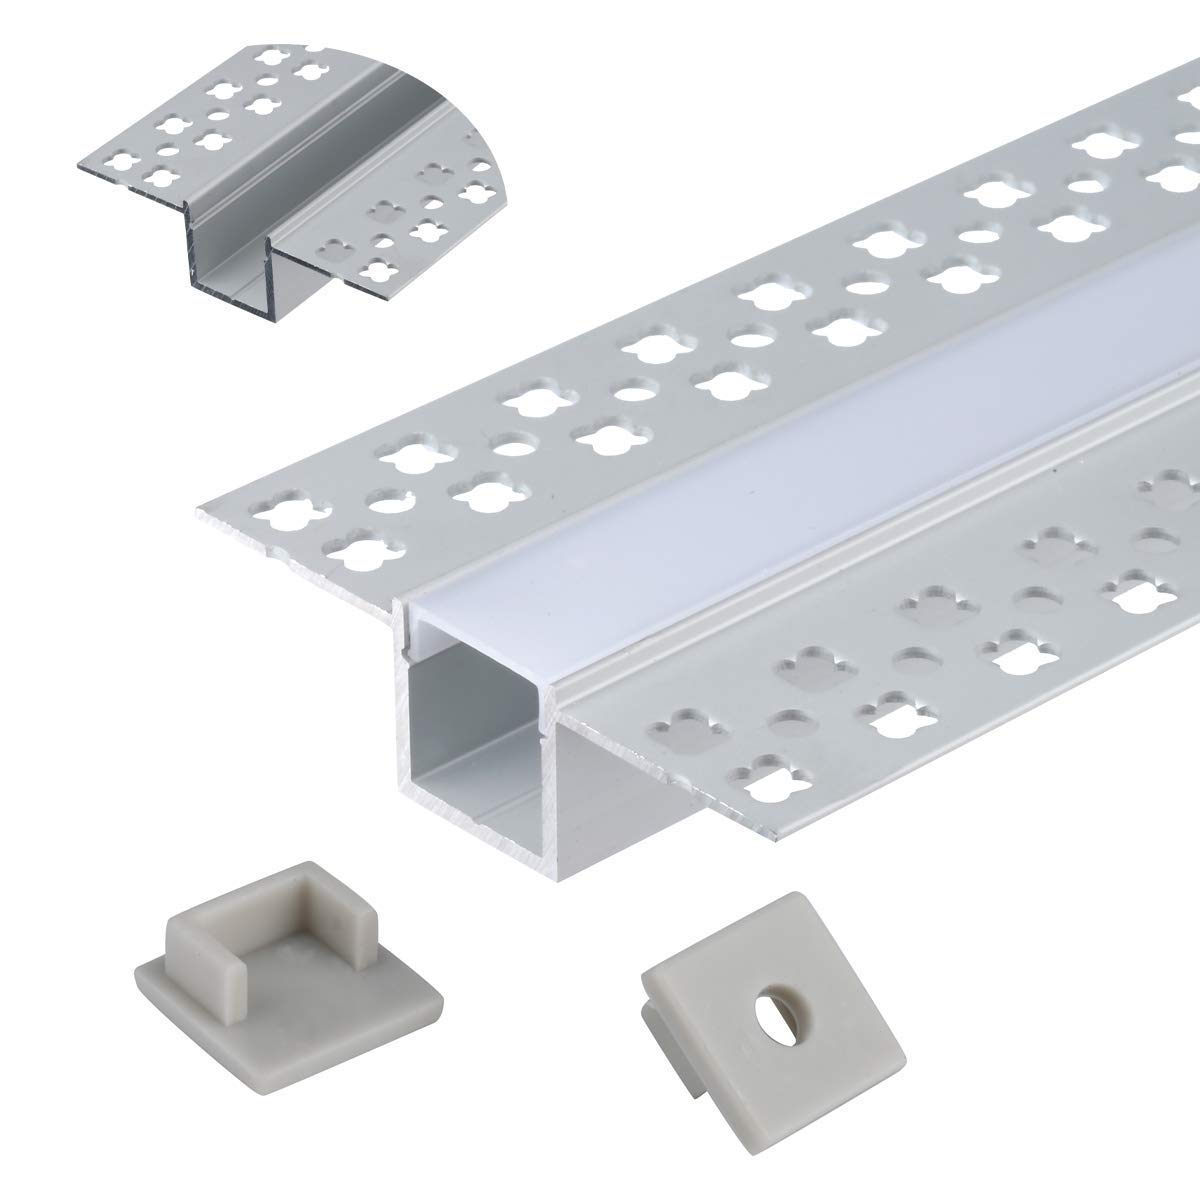 StarlandLed 5-Pack 6.6FT/2 Meter Plaster-in Recessed Slim LED Aluminum Channel with Flange for LED Strip, Aluminium LED Profile with Clip-in Diffuser and End Caps by StarlandLed (Image #2)